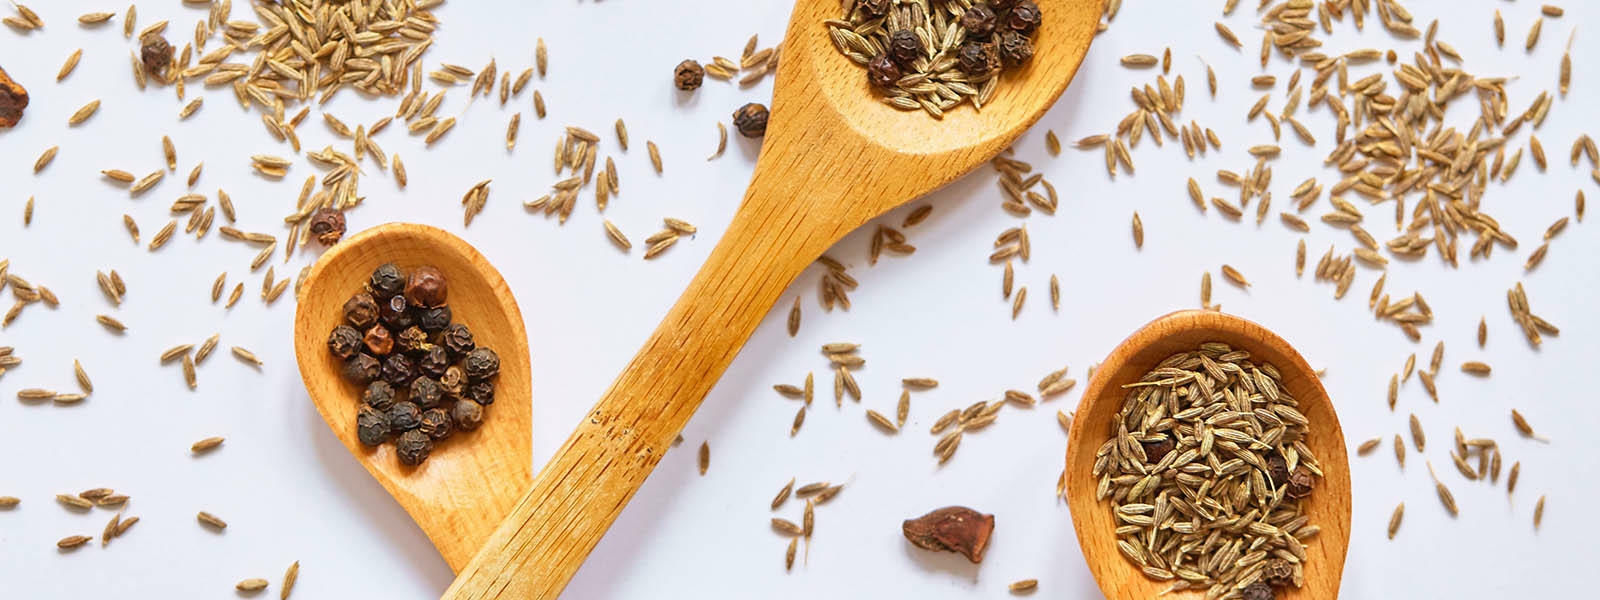 Spices that increase your well-being